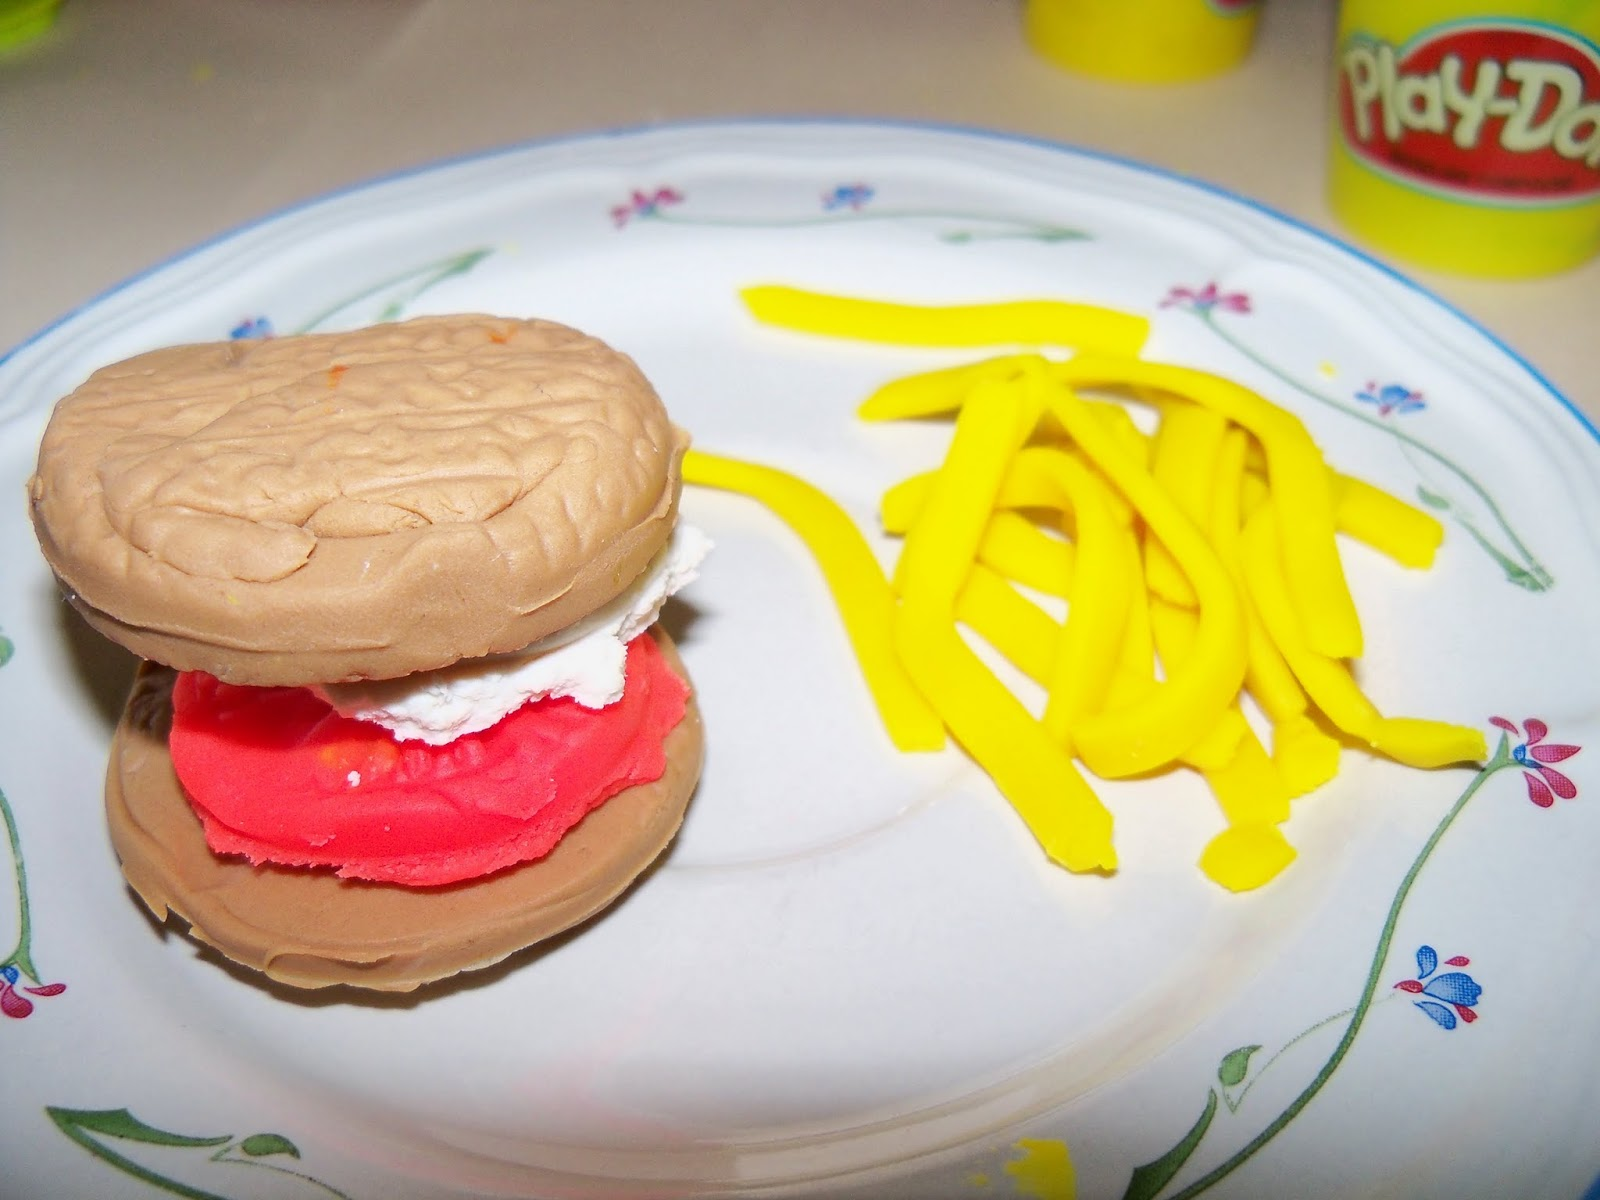 Playdoh Lunch - 115_4133.JPG